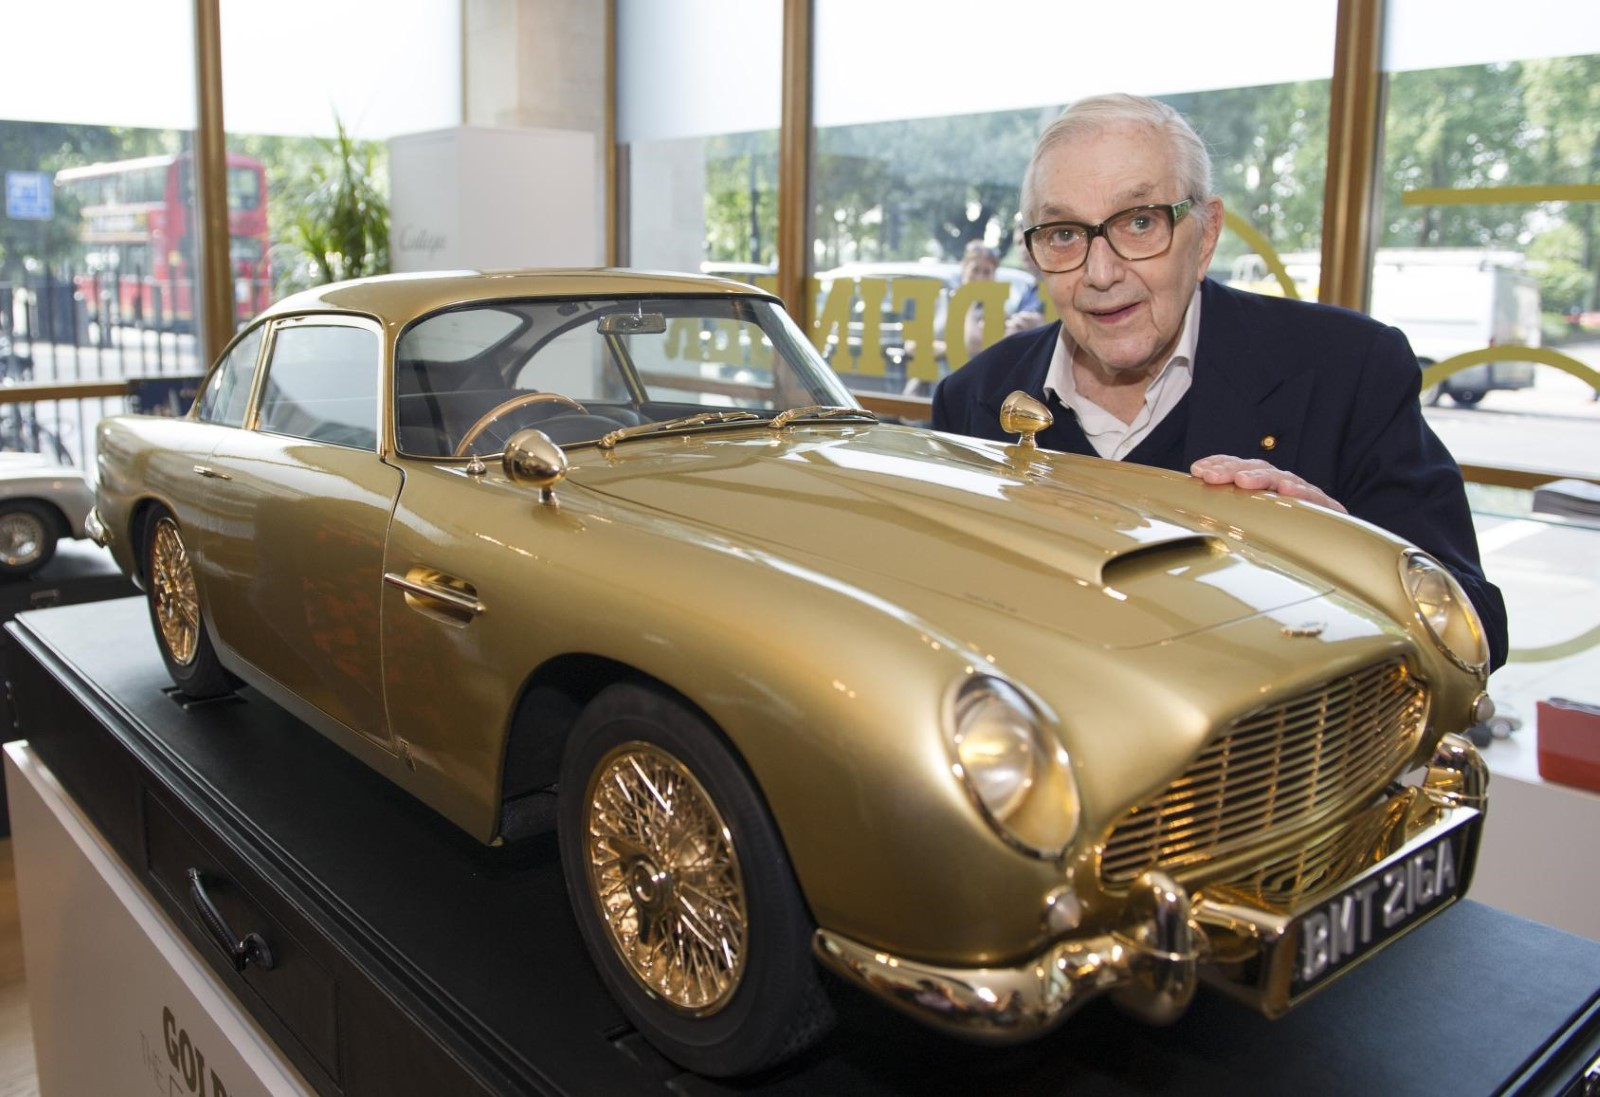 Gold Plated Aston Martin Db5 Model Set For Charity Auction